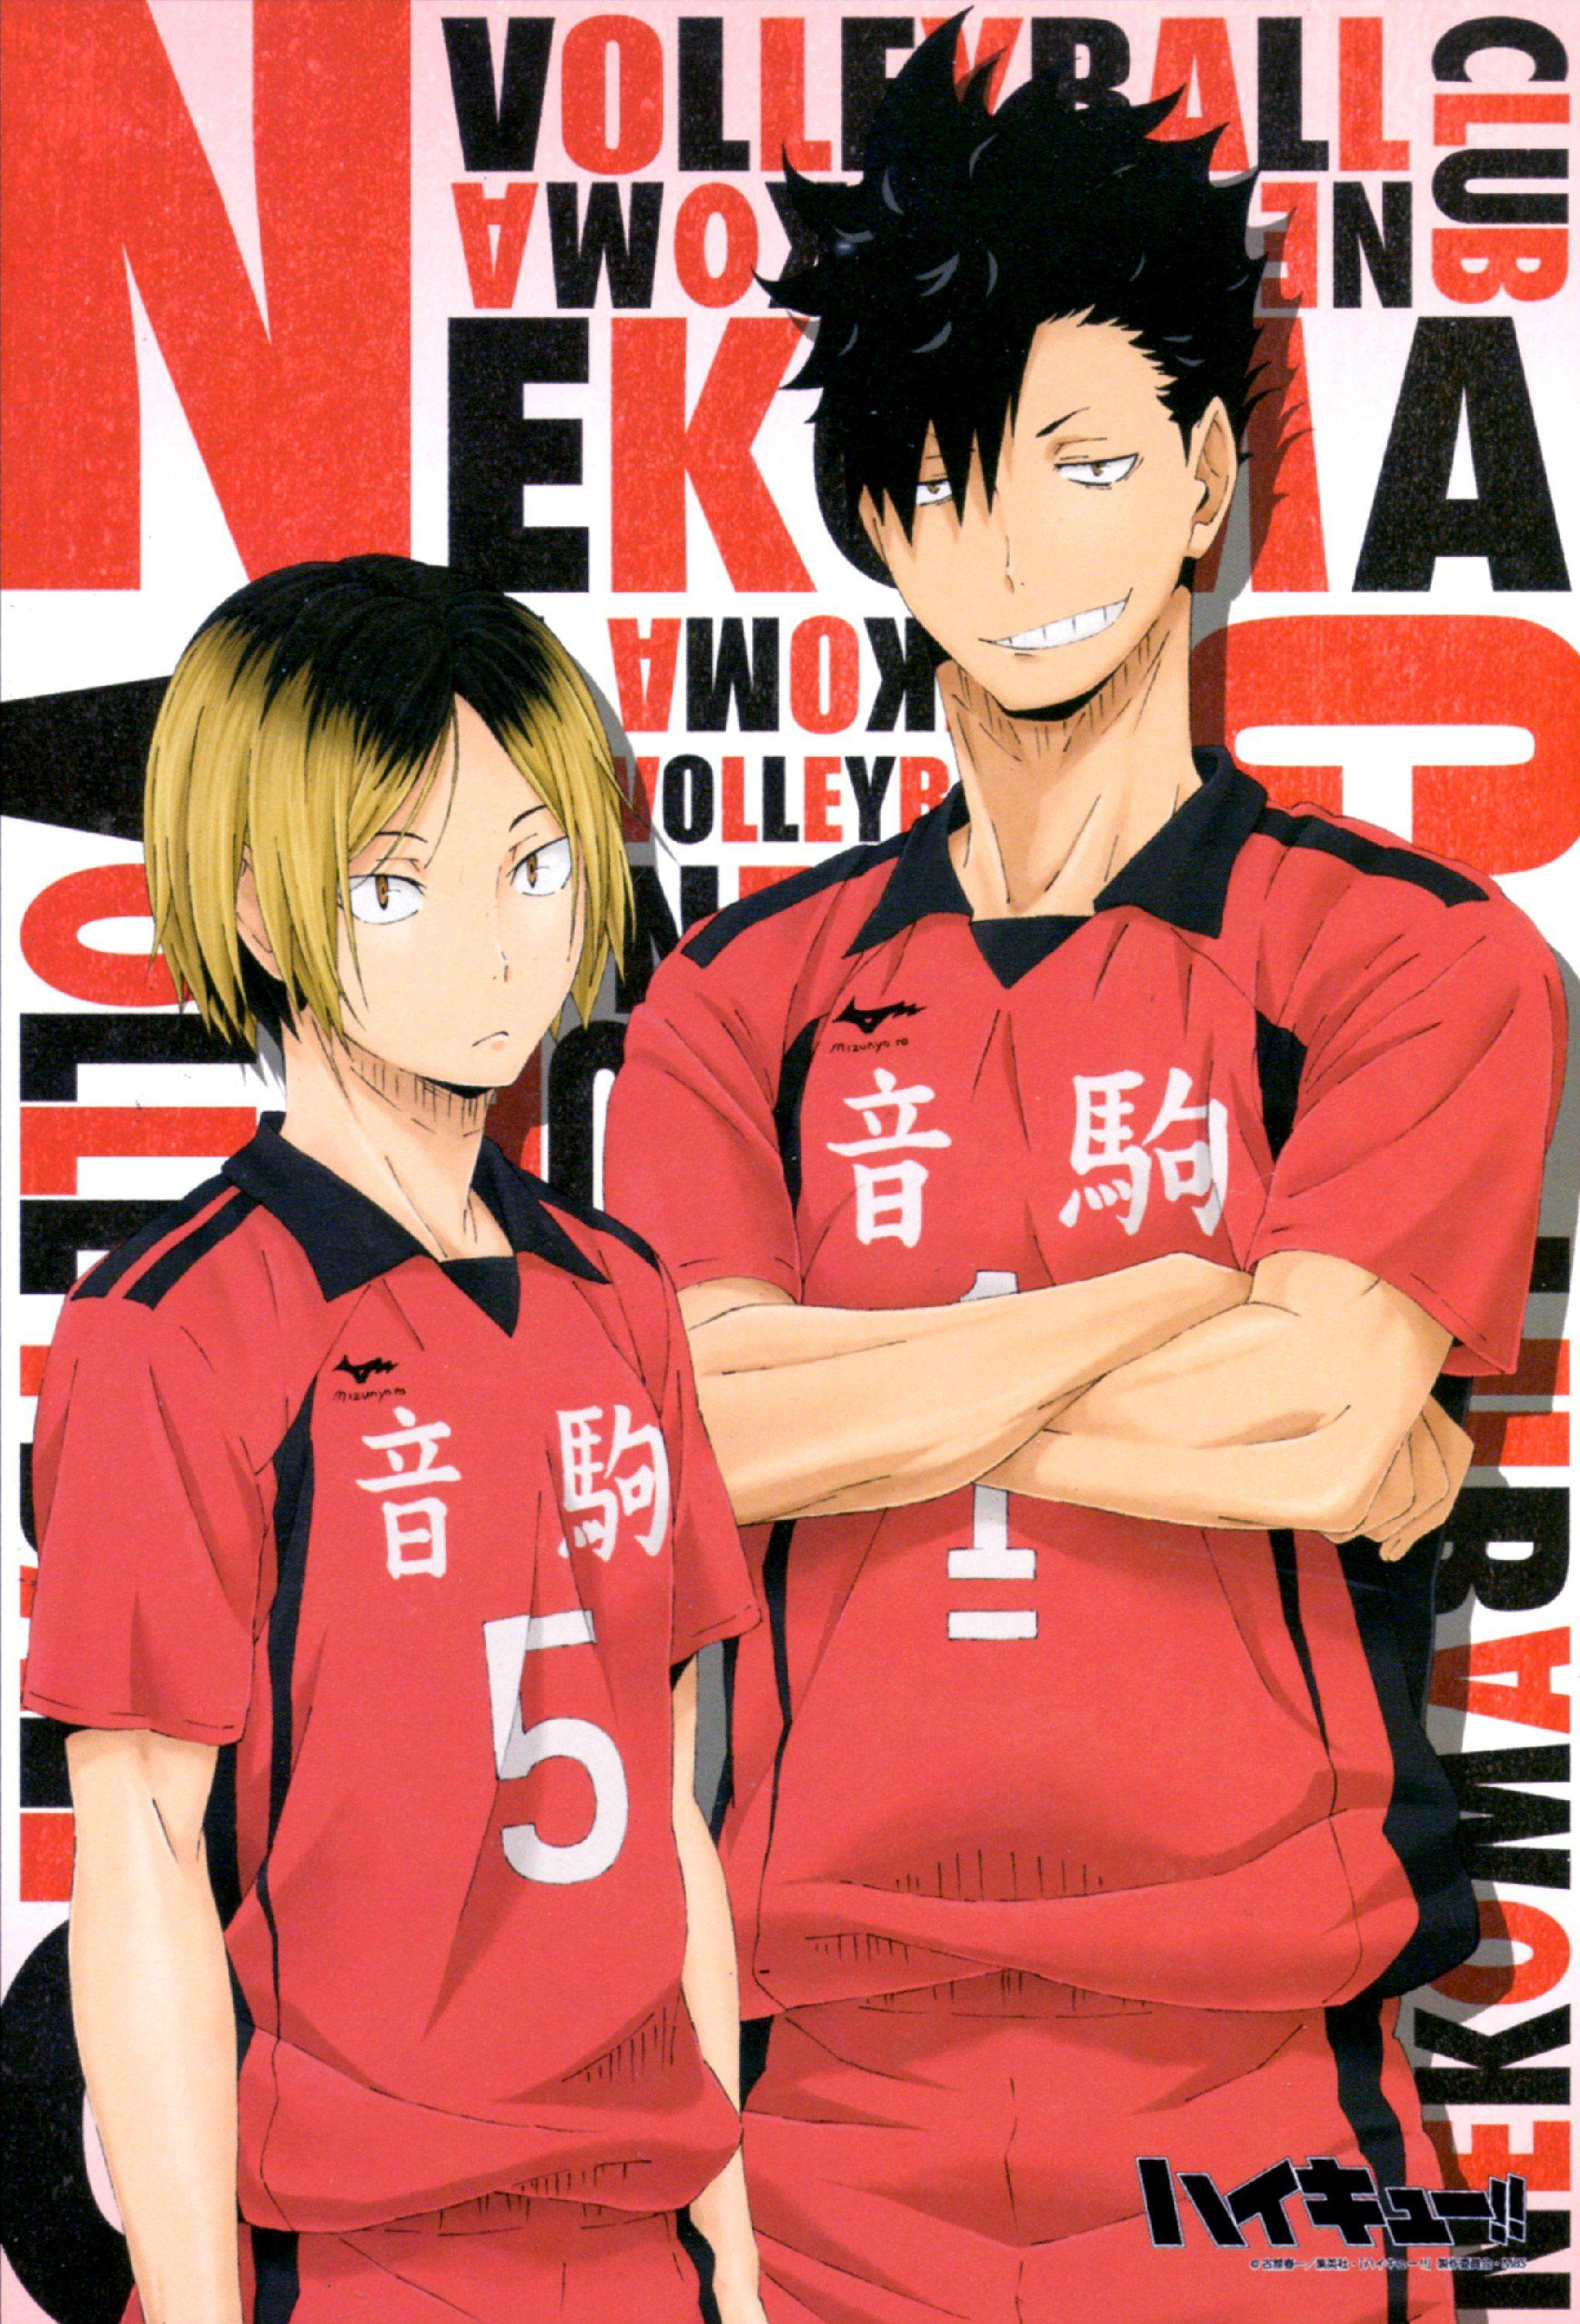 Nekoma High Wallpapers Wallpaper Cave See more nekoma wallpaper, nekoma backgrounds, nekoma haikyuu wallpaper, nekoma high looking for the best nekoma wallpaper? nekoma high wallpapers wallpaper cave